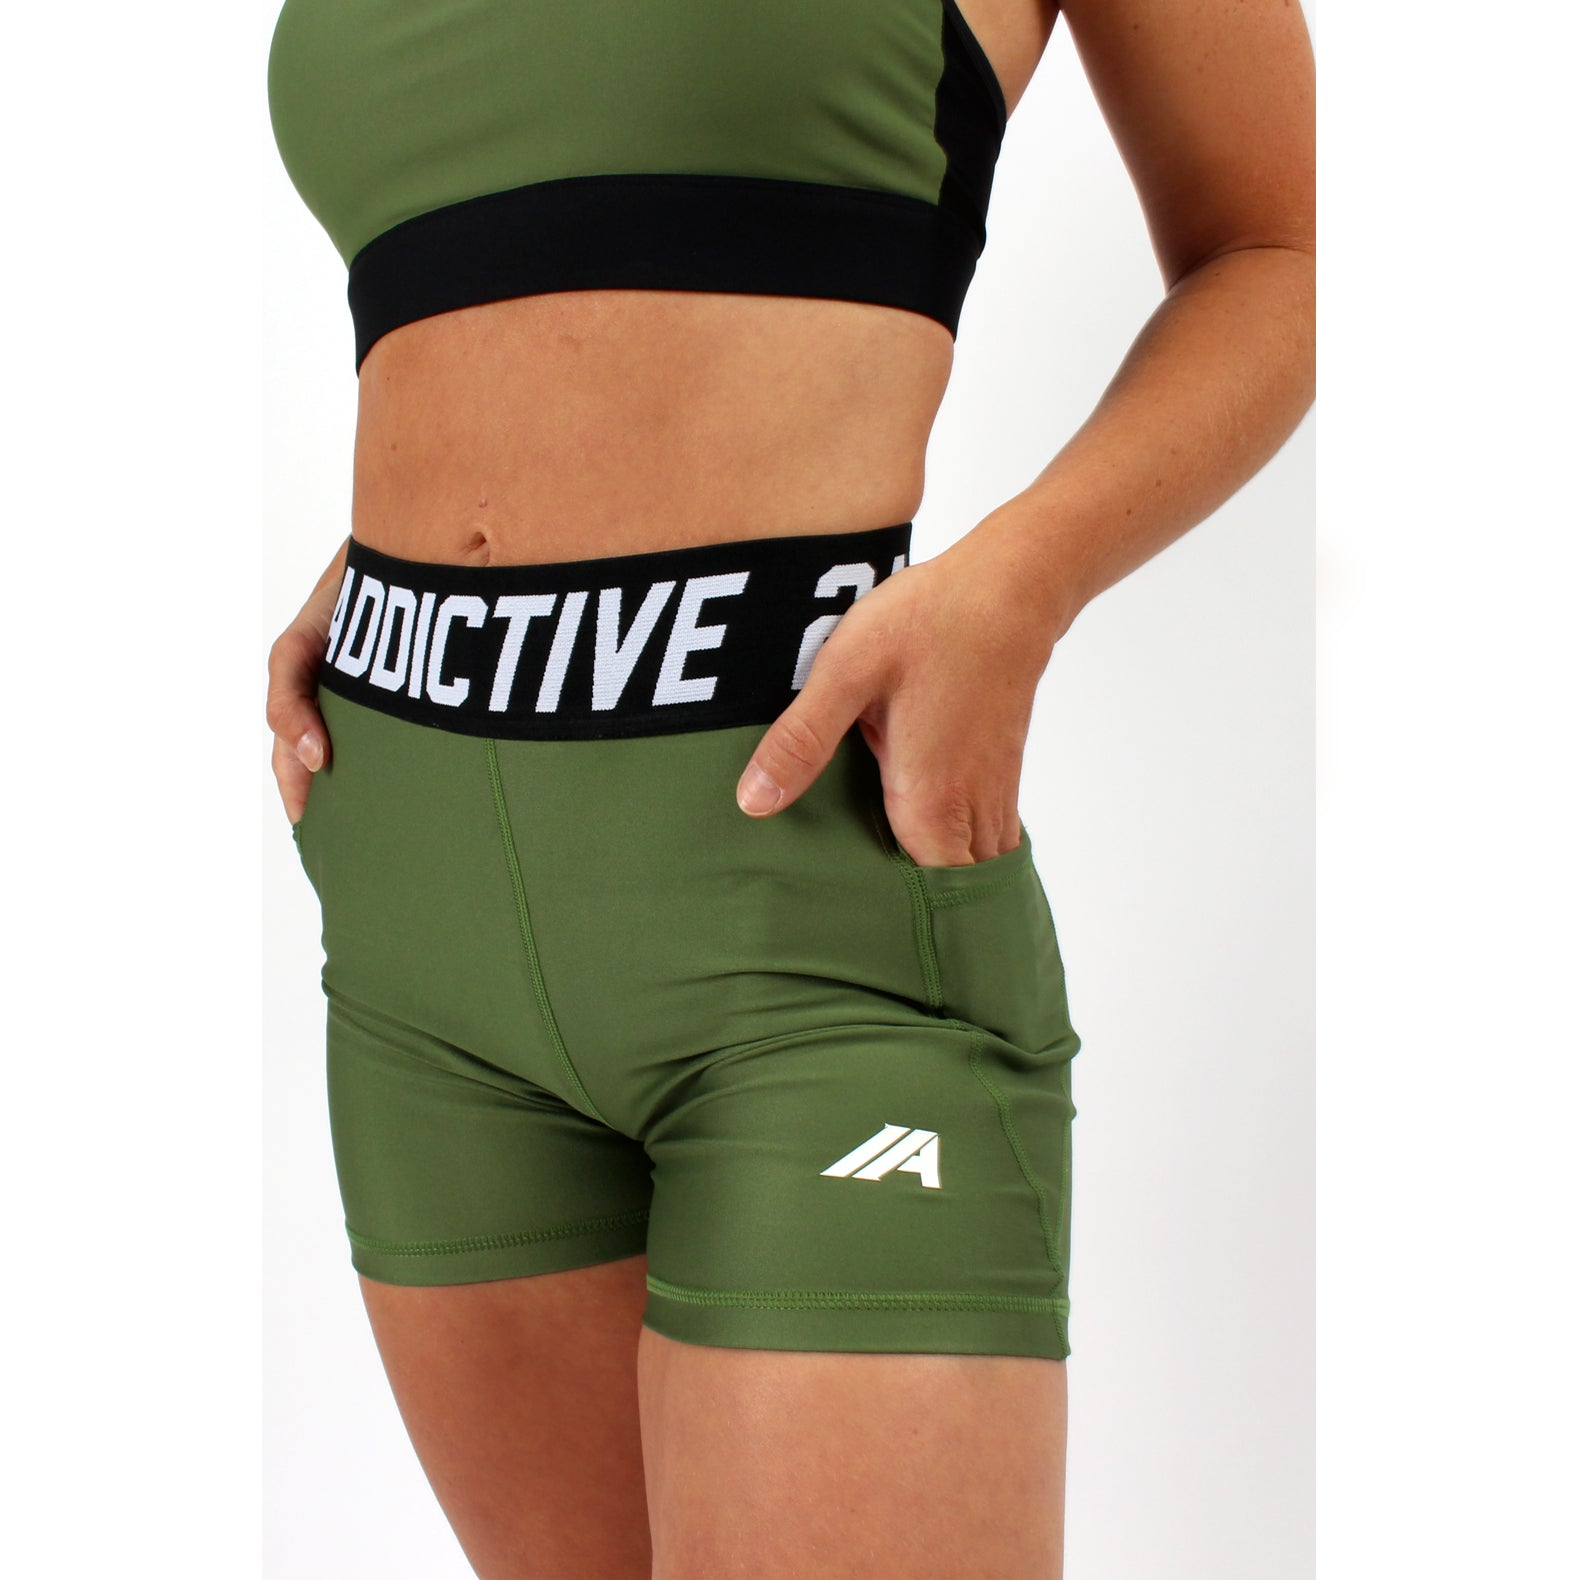 Atleta series - Khaki shorts - 2 Addictive